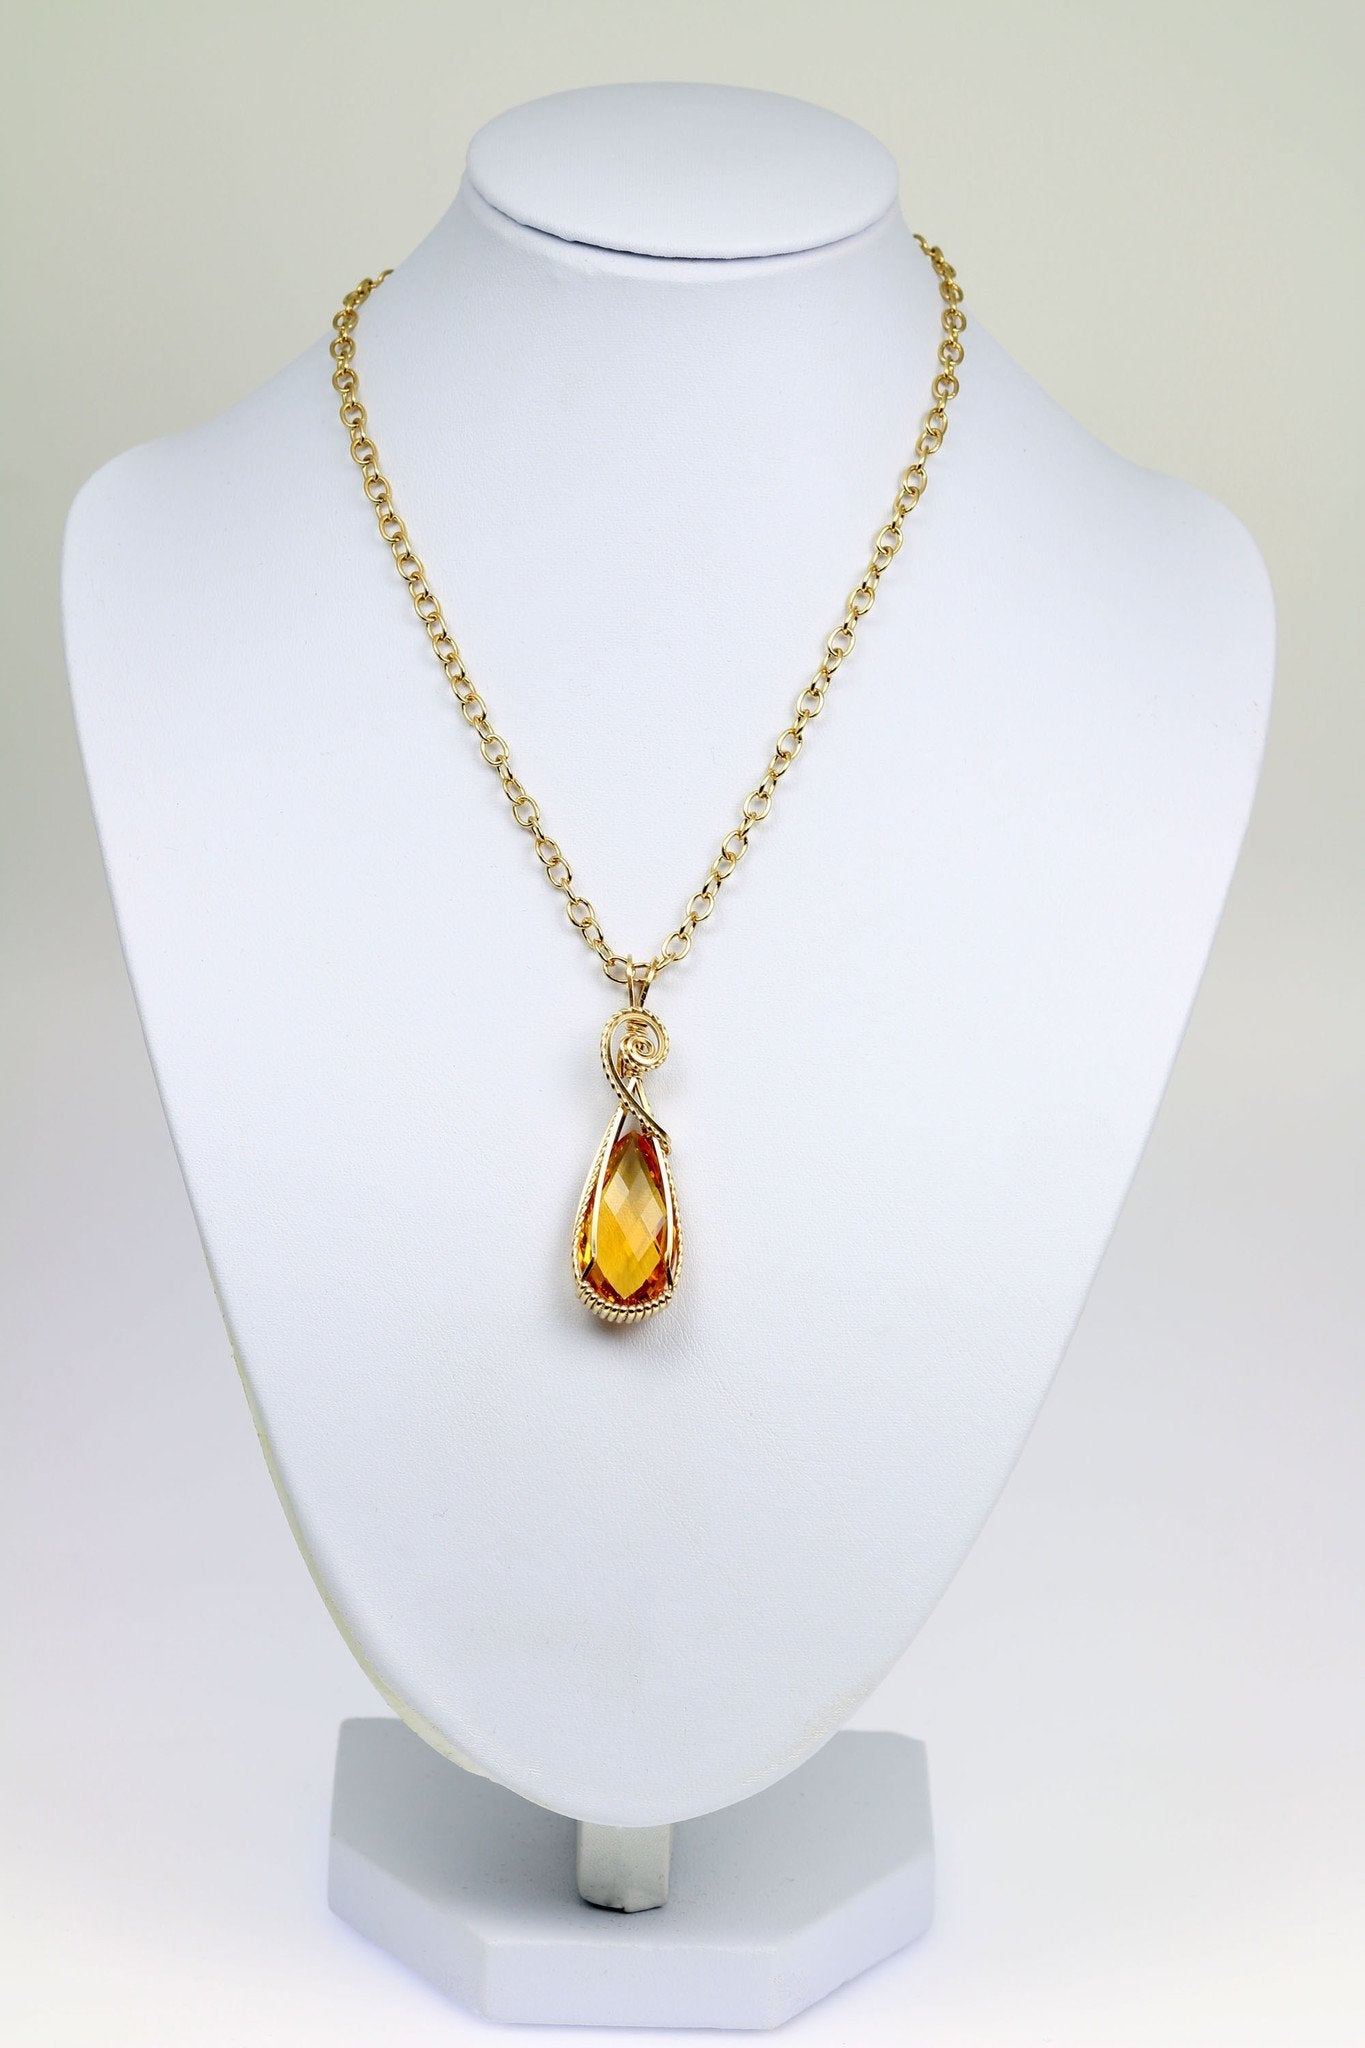 22 CT Citrine 14K Gold-filled Wire Wrapped Pendant - John S Brana ...